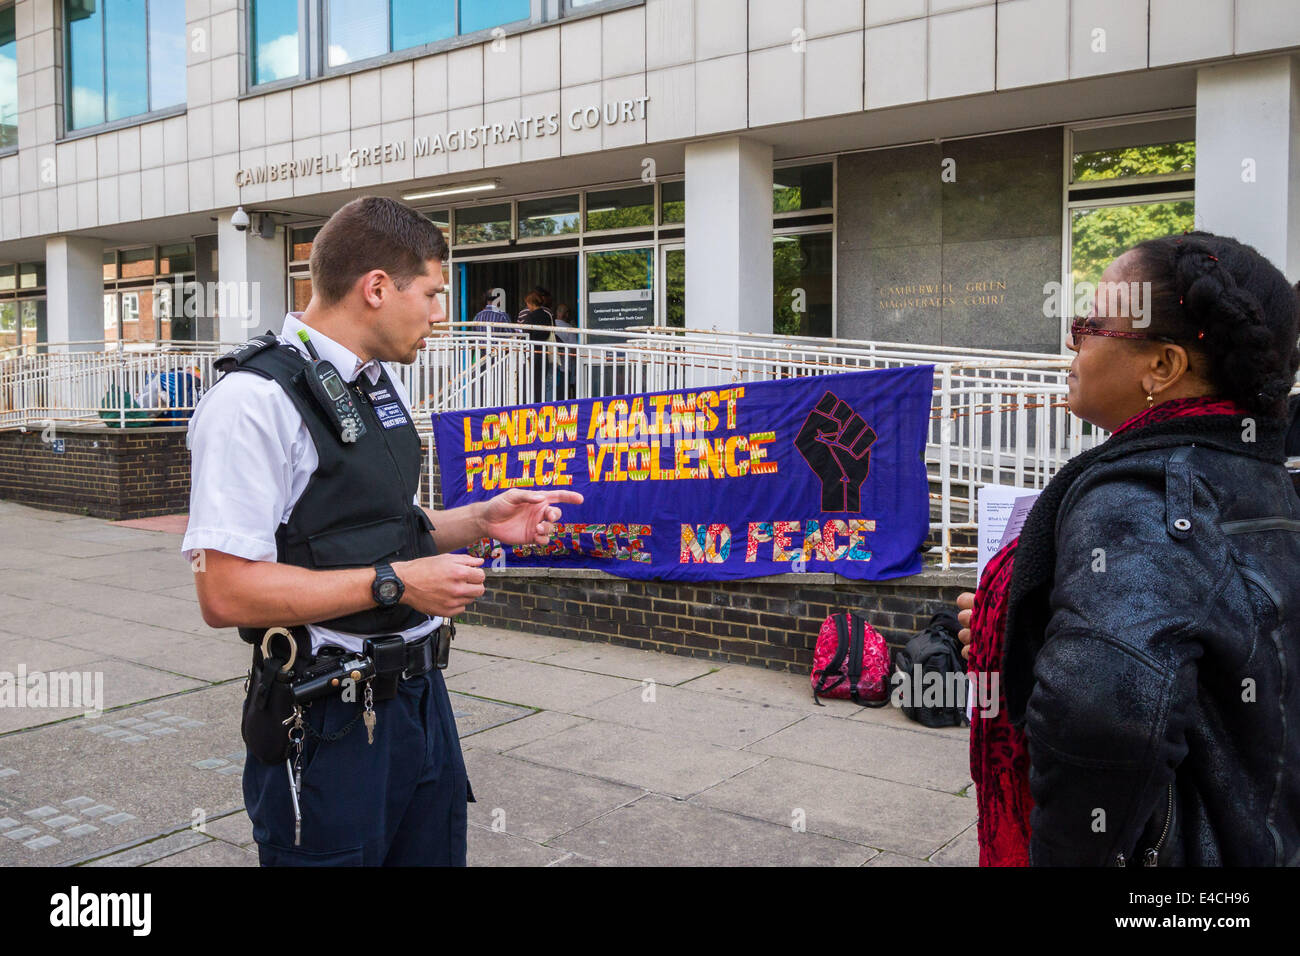 London, UK. 8th July 2014. Protest against Police brutality at Camberwell Green Magistrates Court in London Credit: - Stock Image